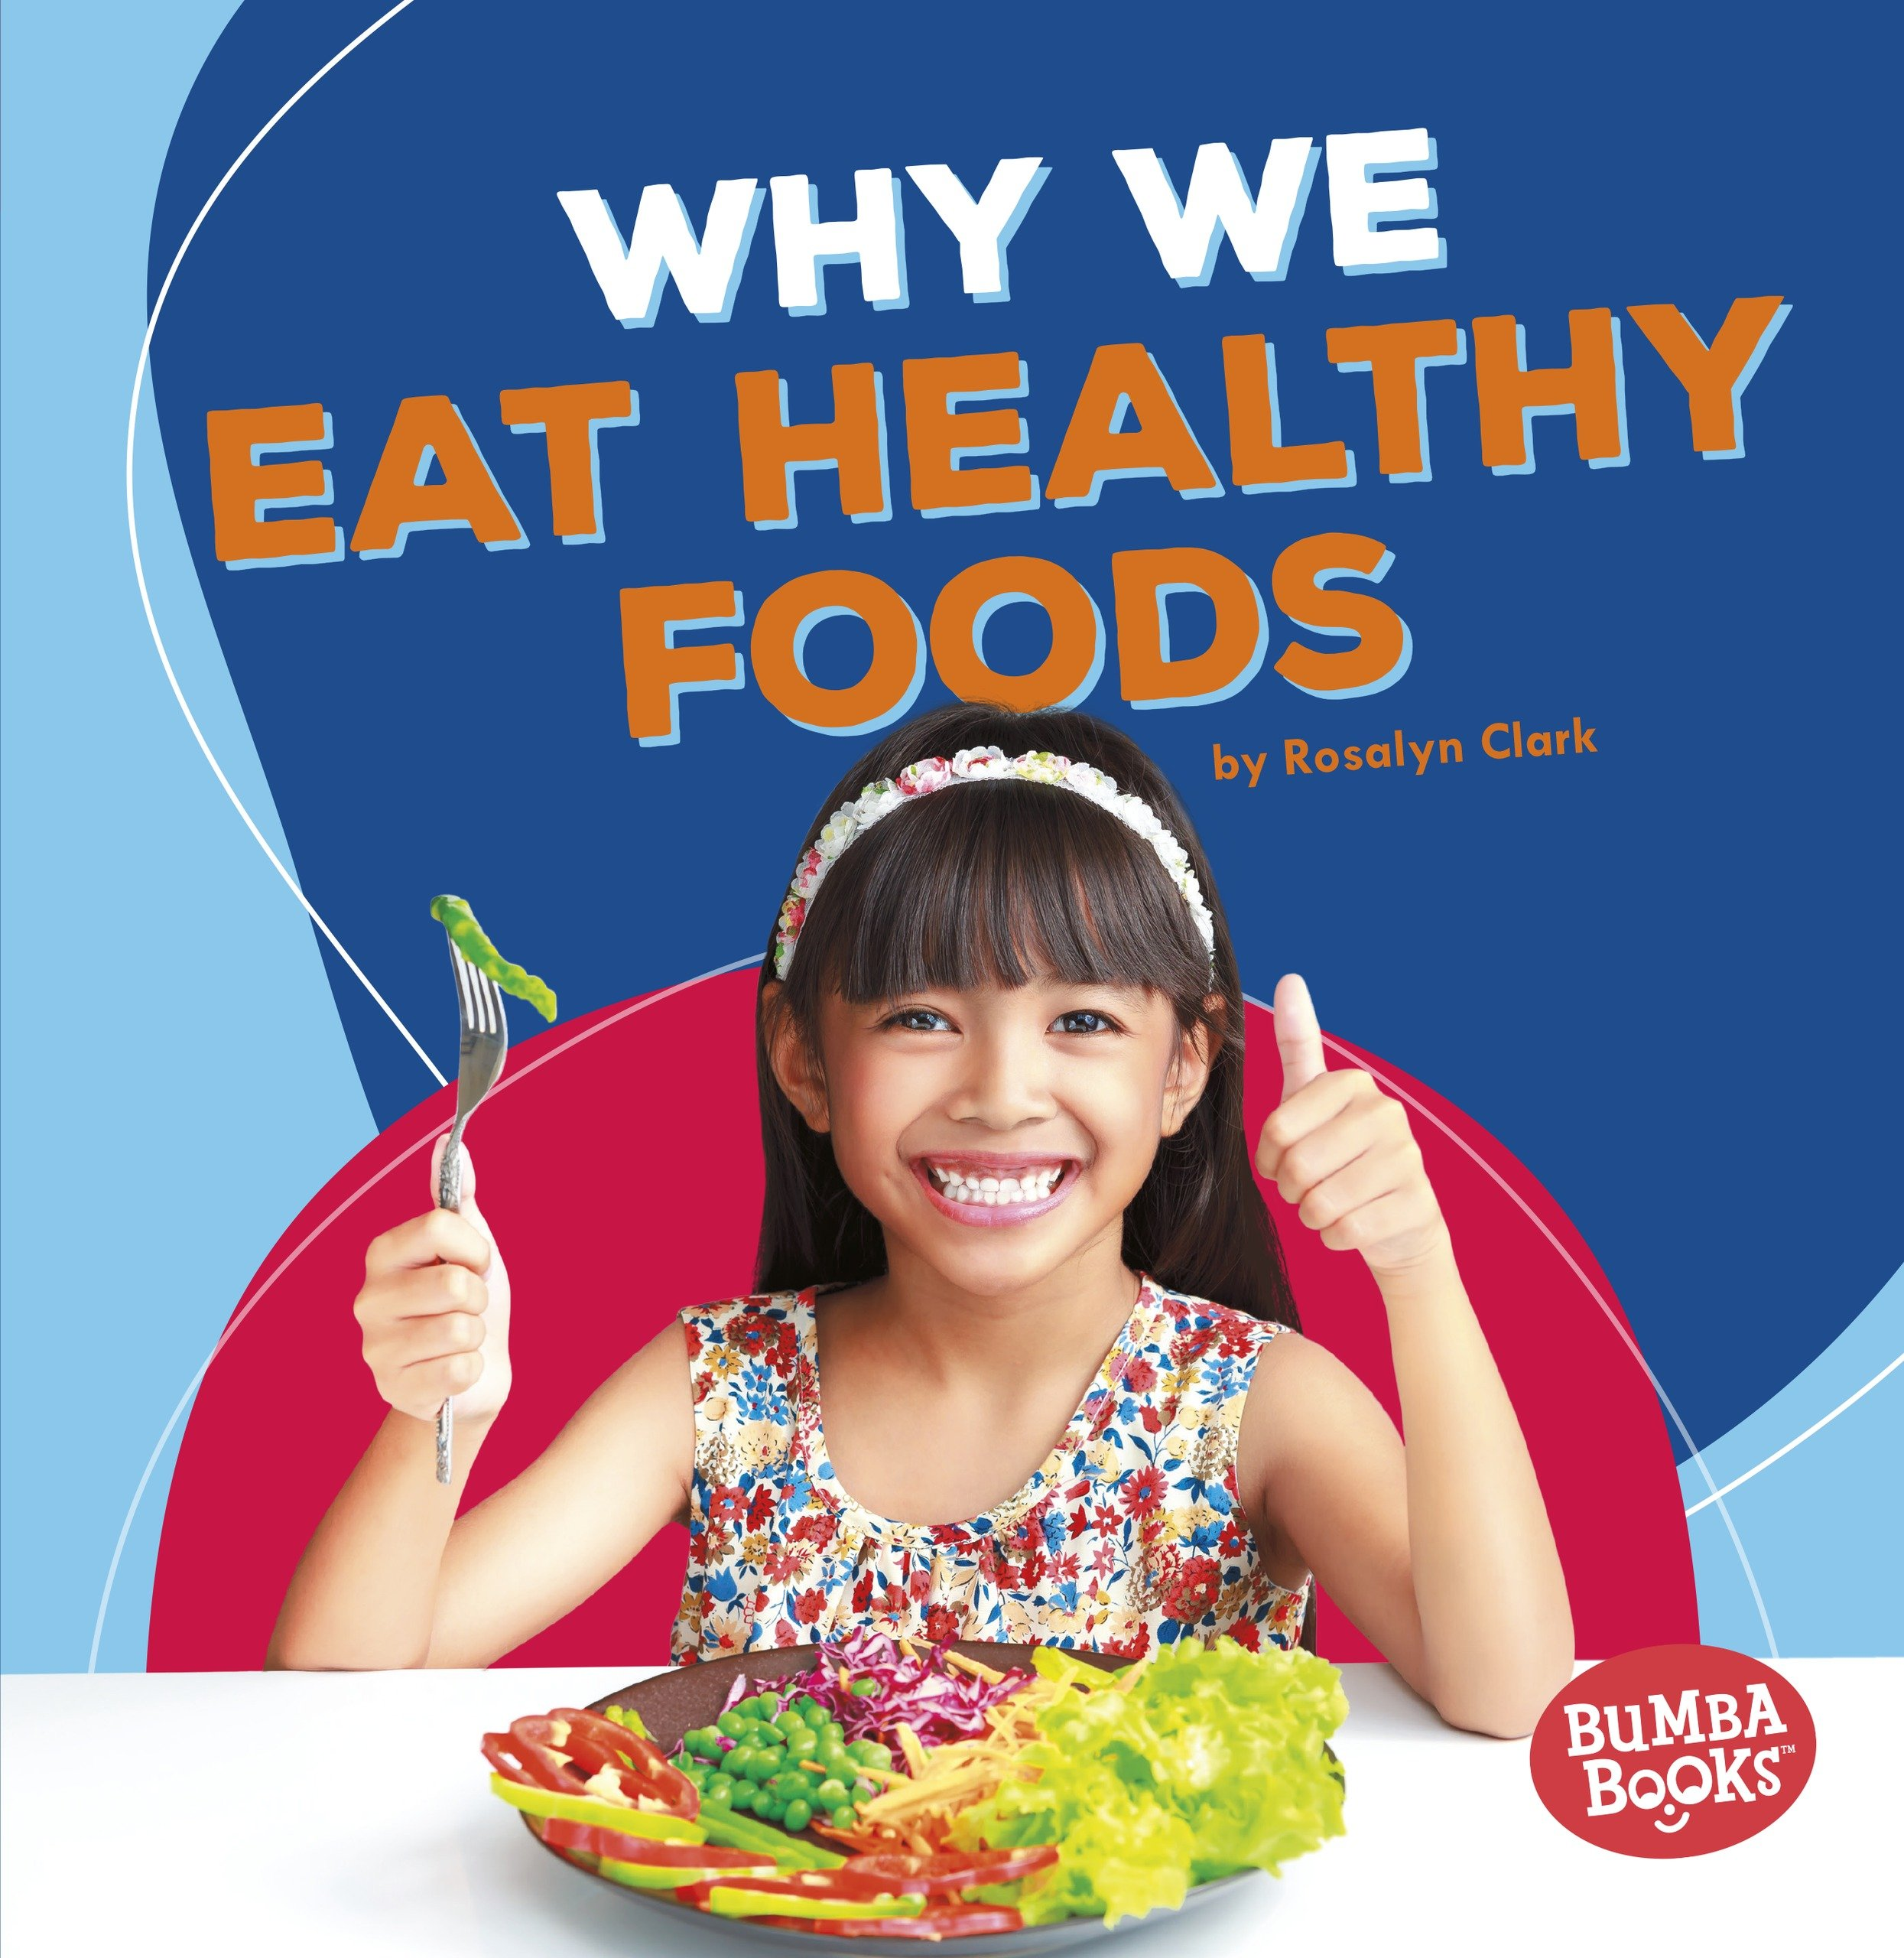 Why We Eat Healthy Foods Bumba Books R Health Matters Clark Rosalyn 9781541511064 Amazon Com Books